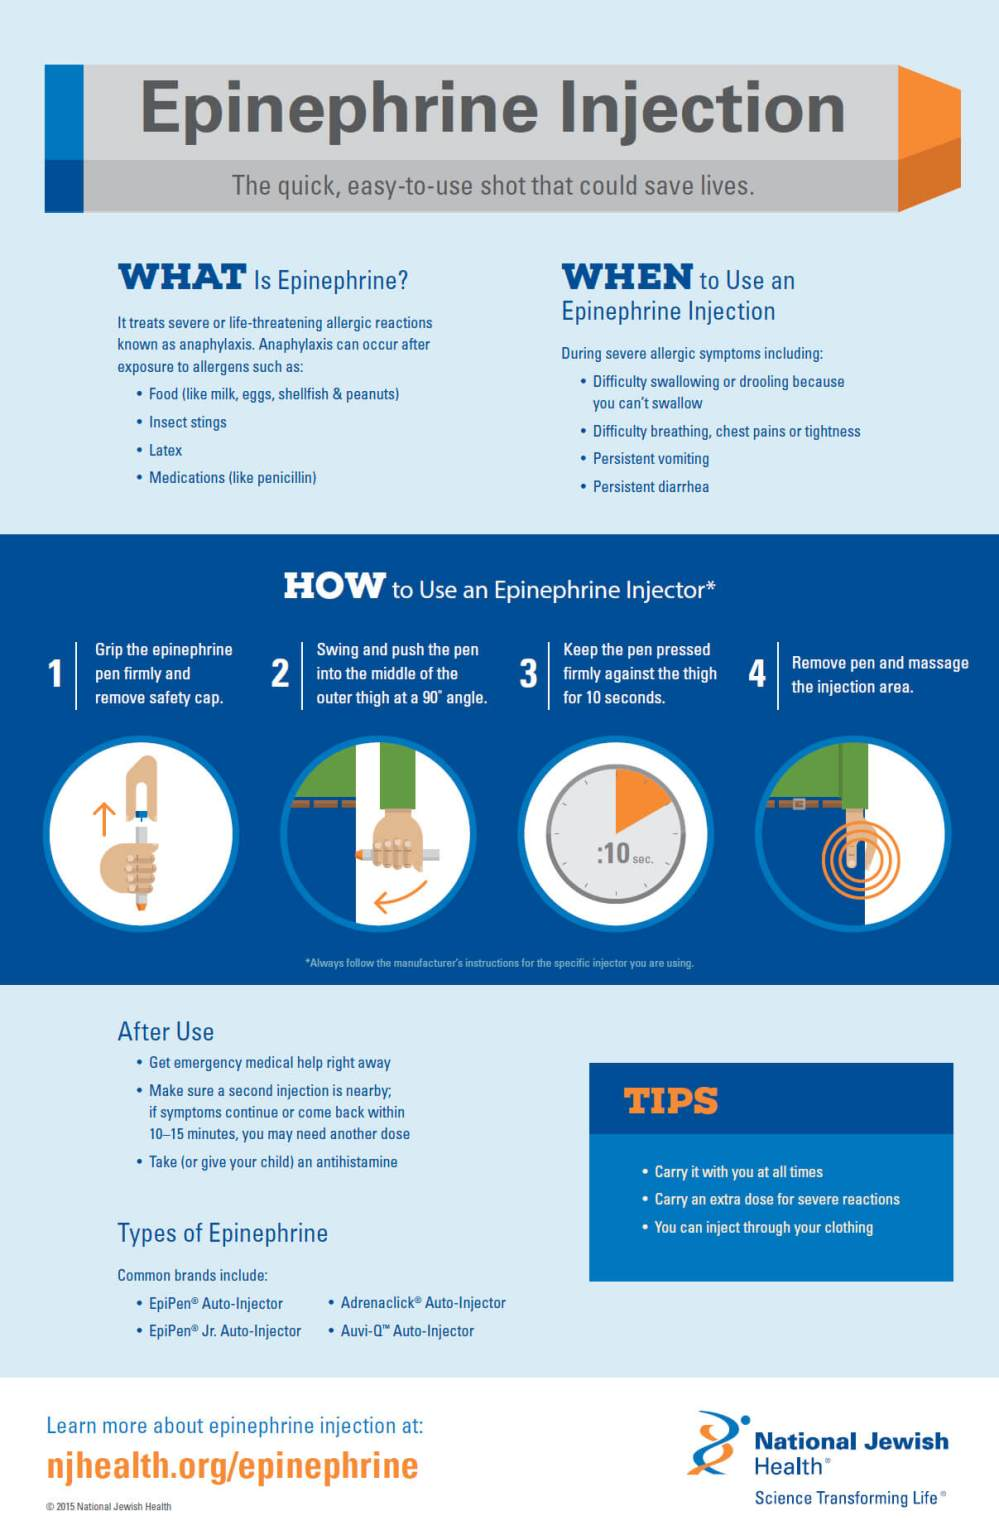 medium resolution of epinephrine injection infographic the quick shot that could save lives